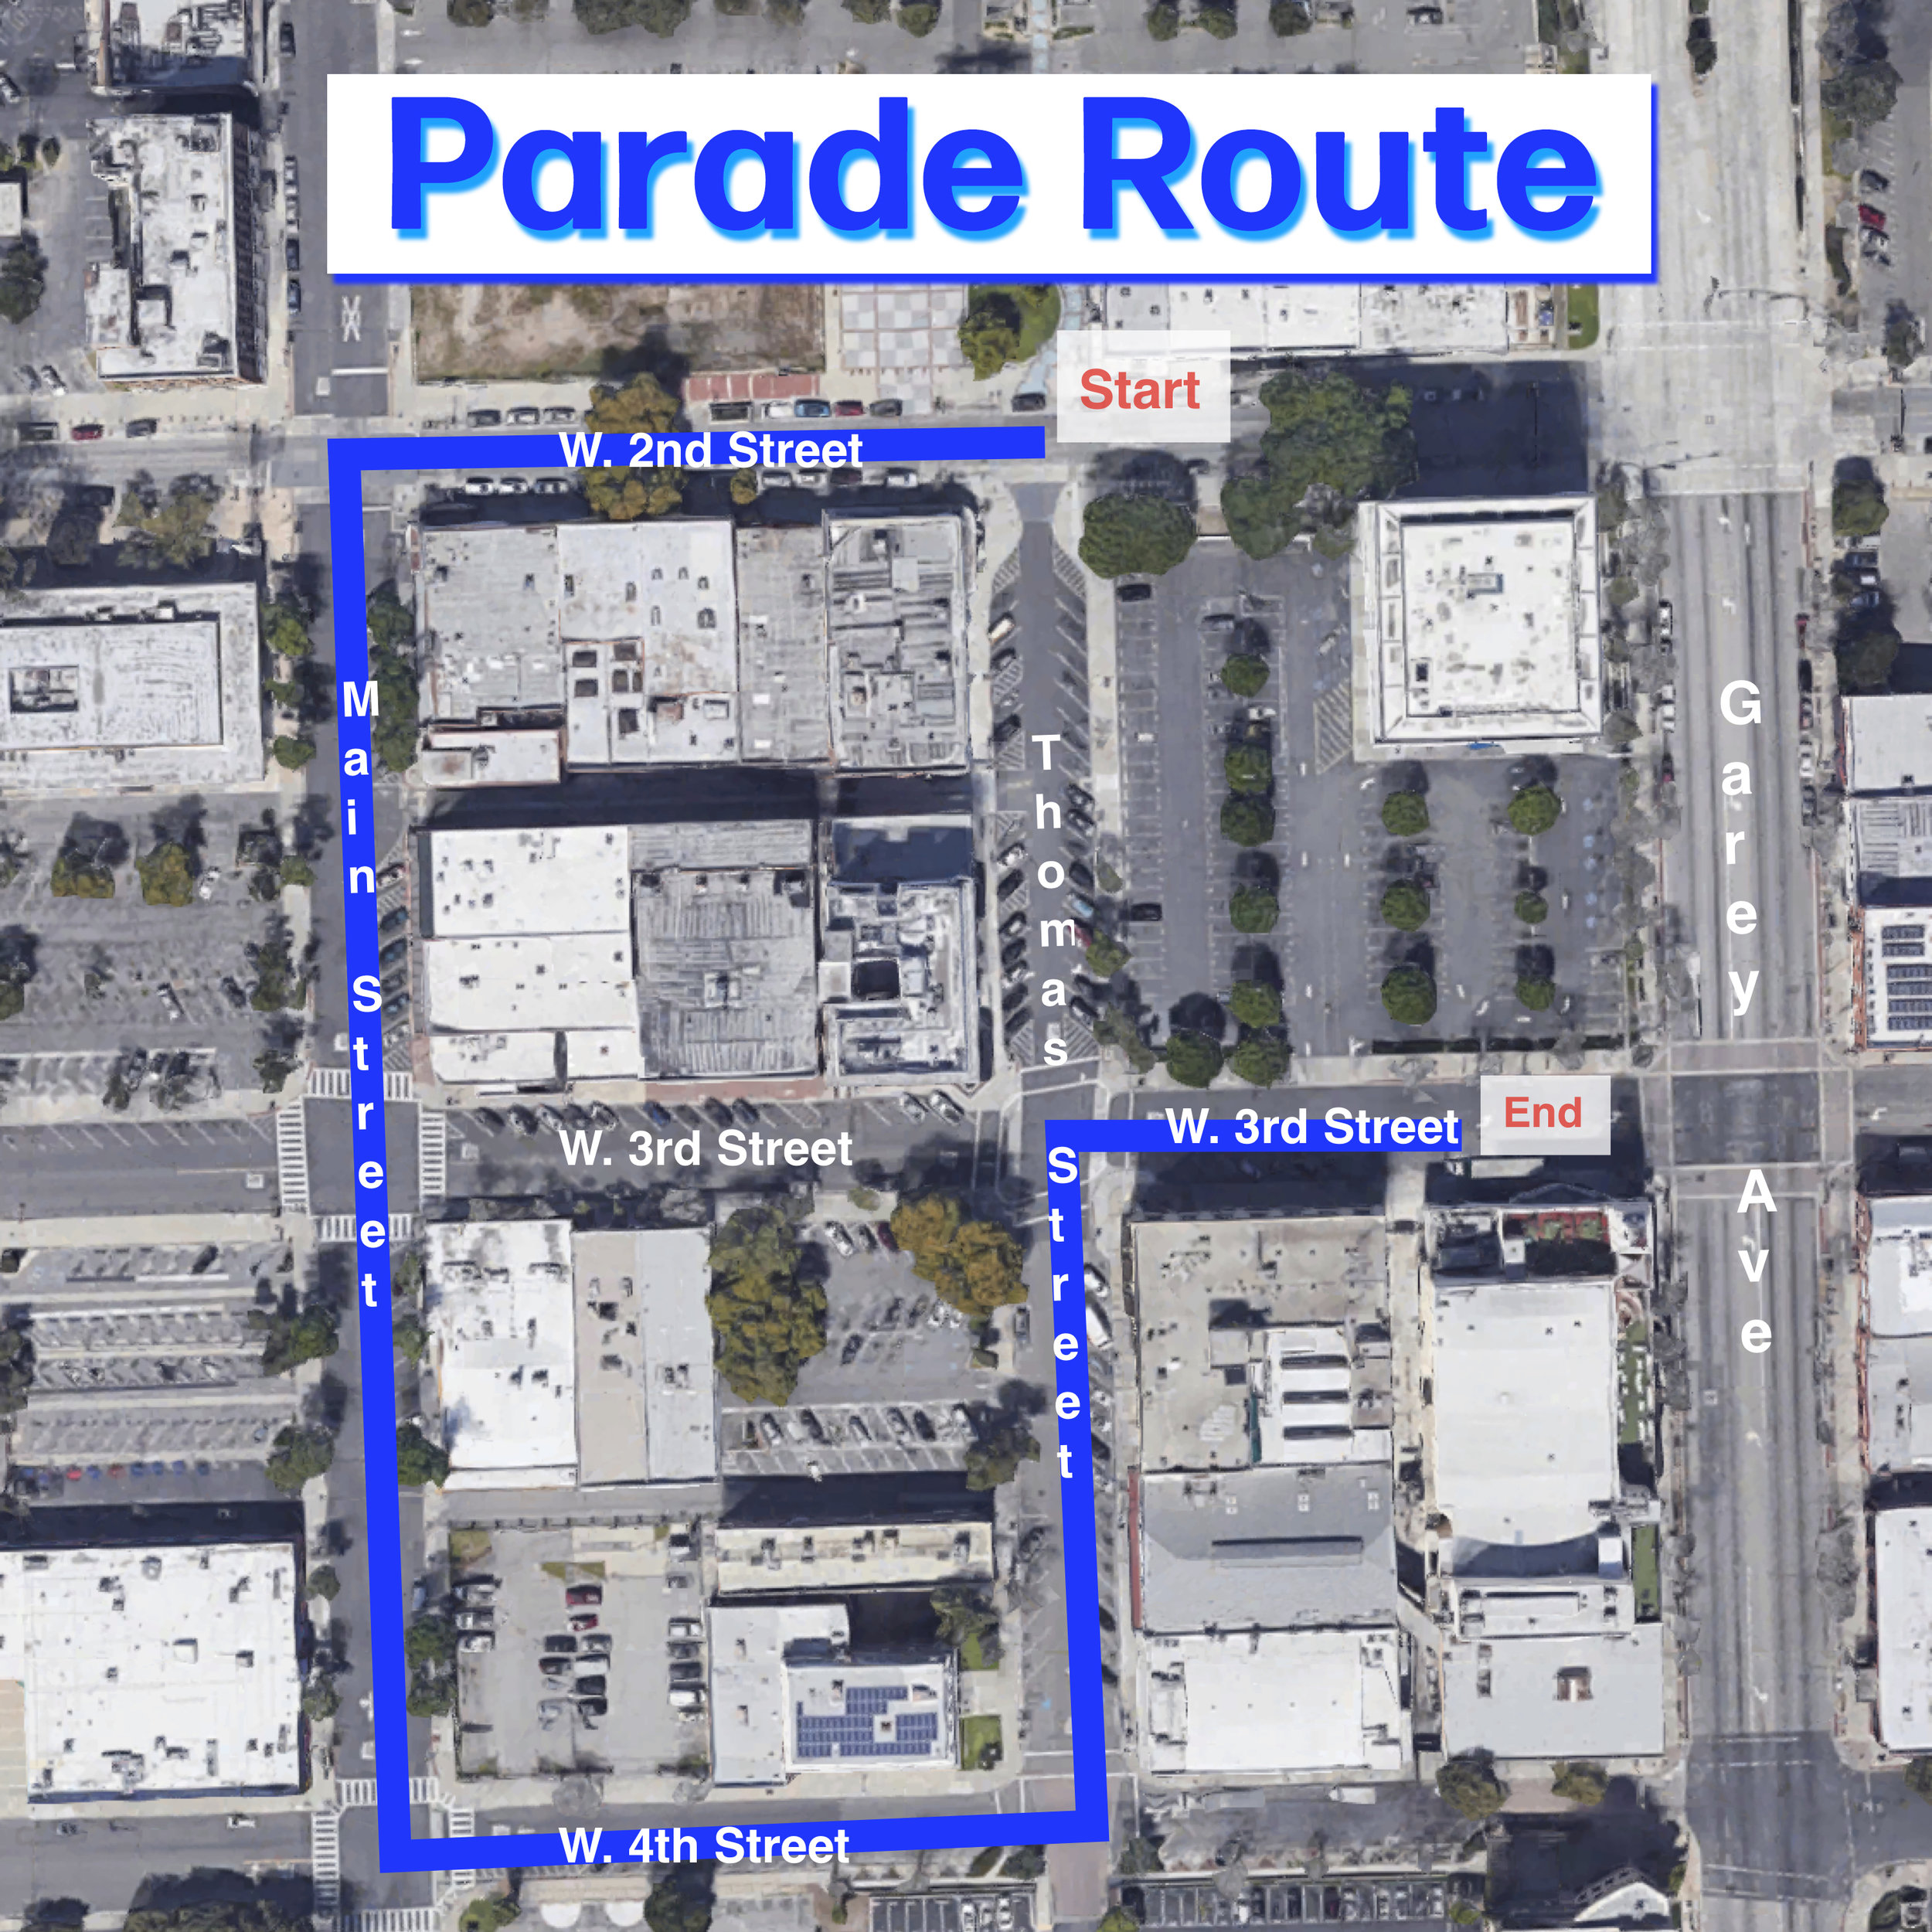 Parade Route.jpg